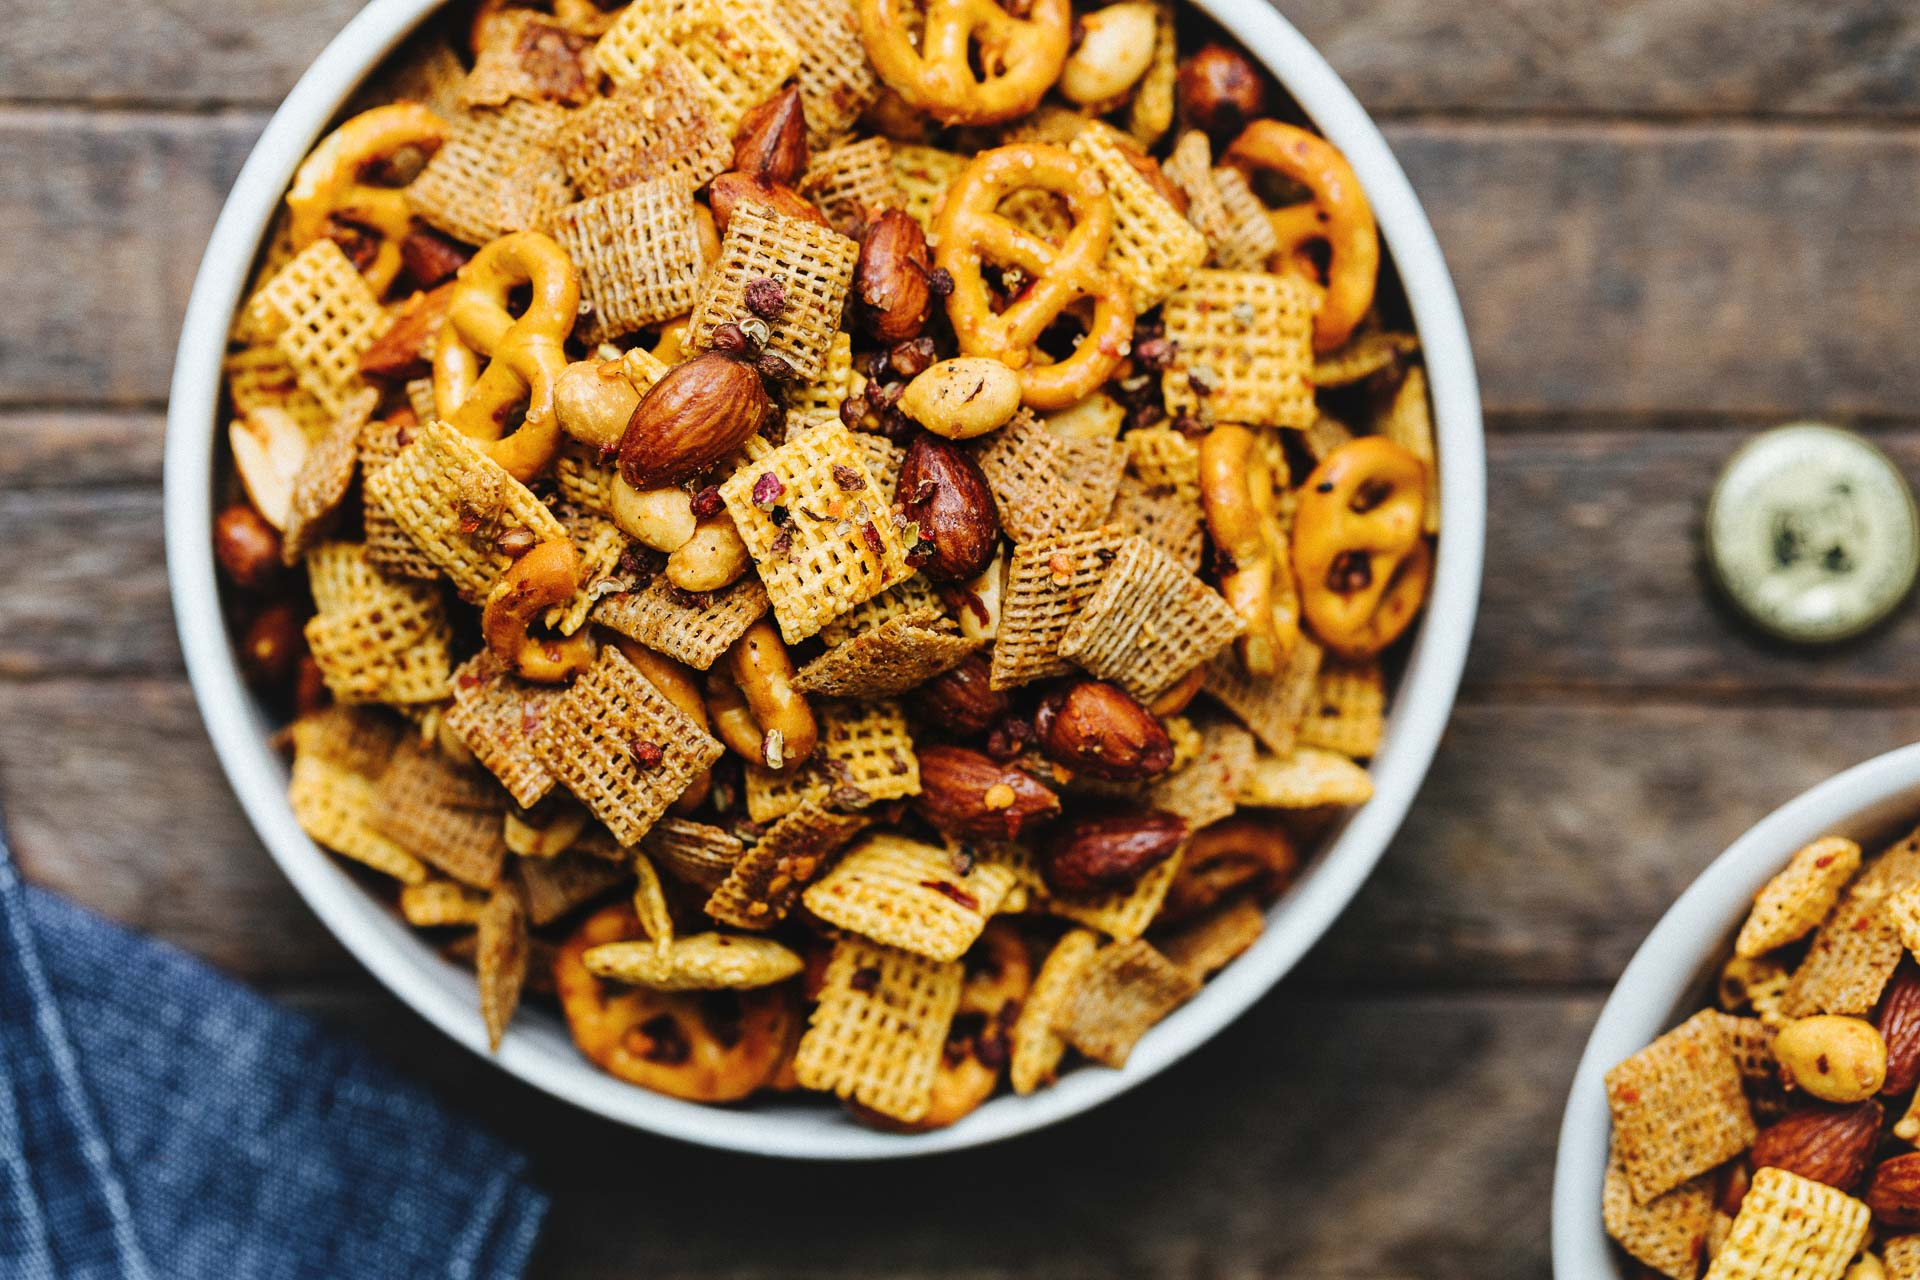 Mouth Numbing Szechuan Chex Mix | HonestlyYUM (honestlyyum.com)